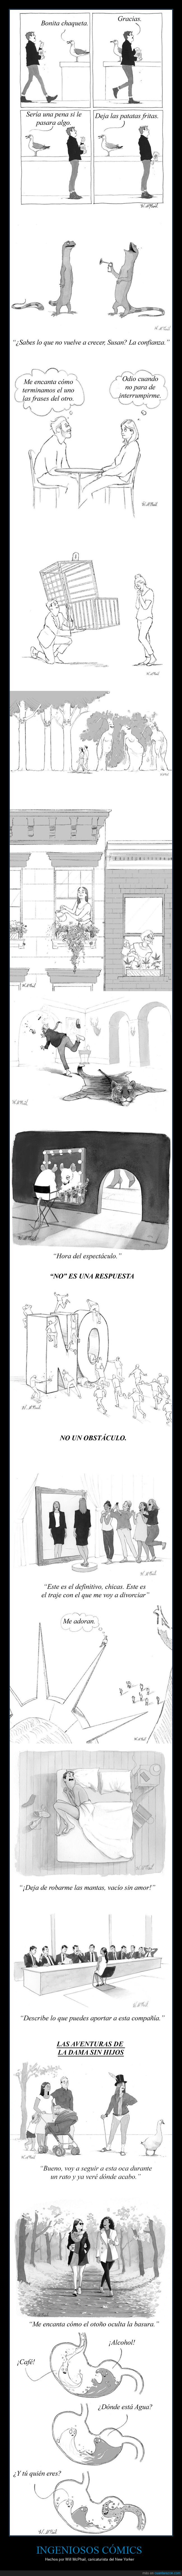 cómics,new yorker,will mcphail